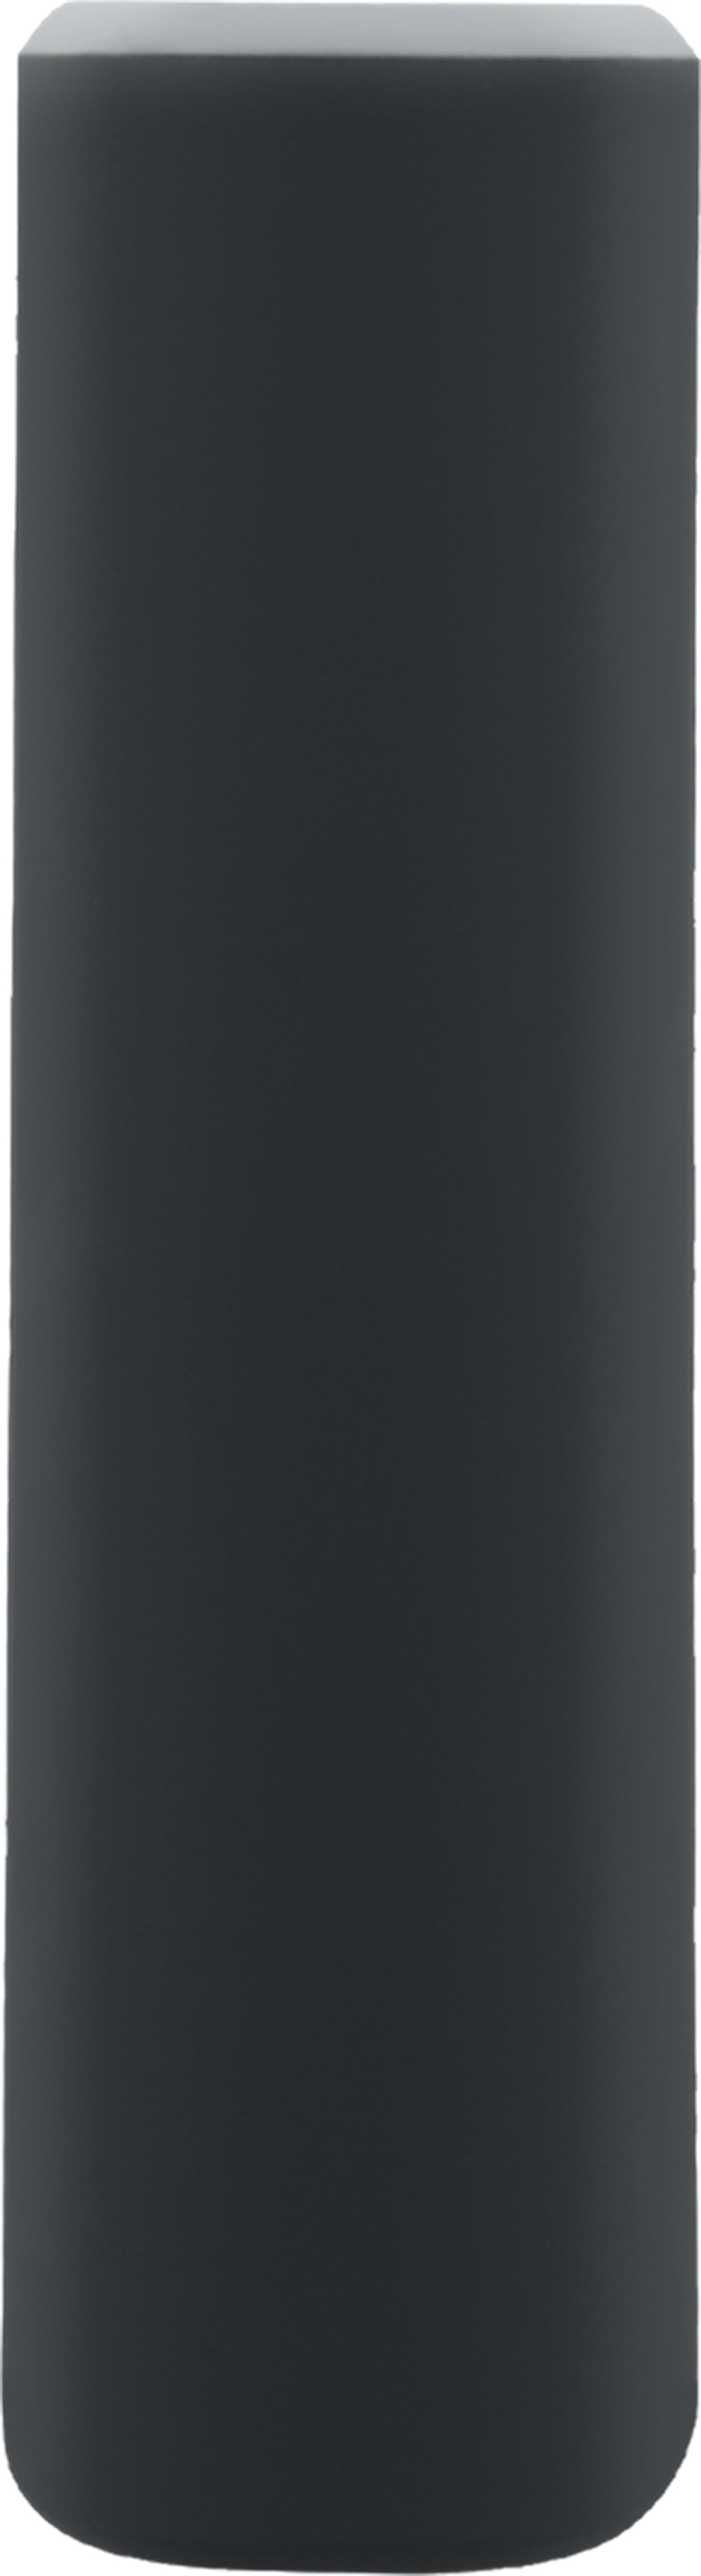 Power bank 5000 mAh (Black) - Image